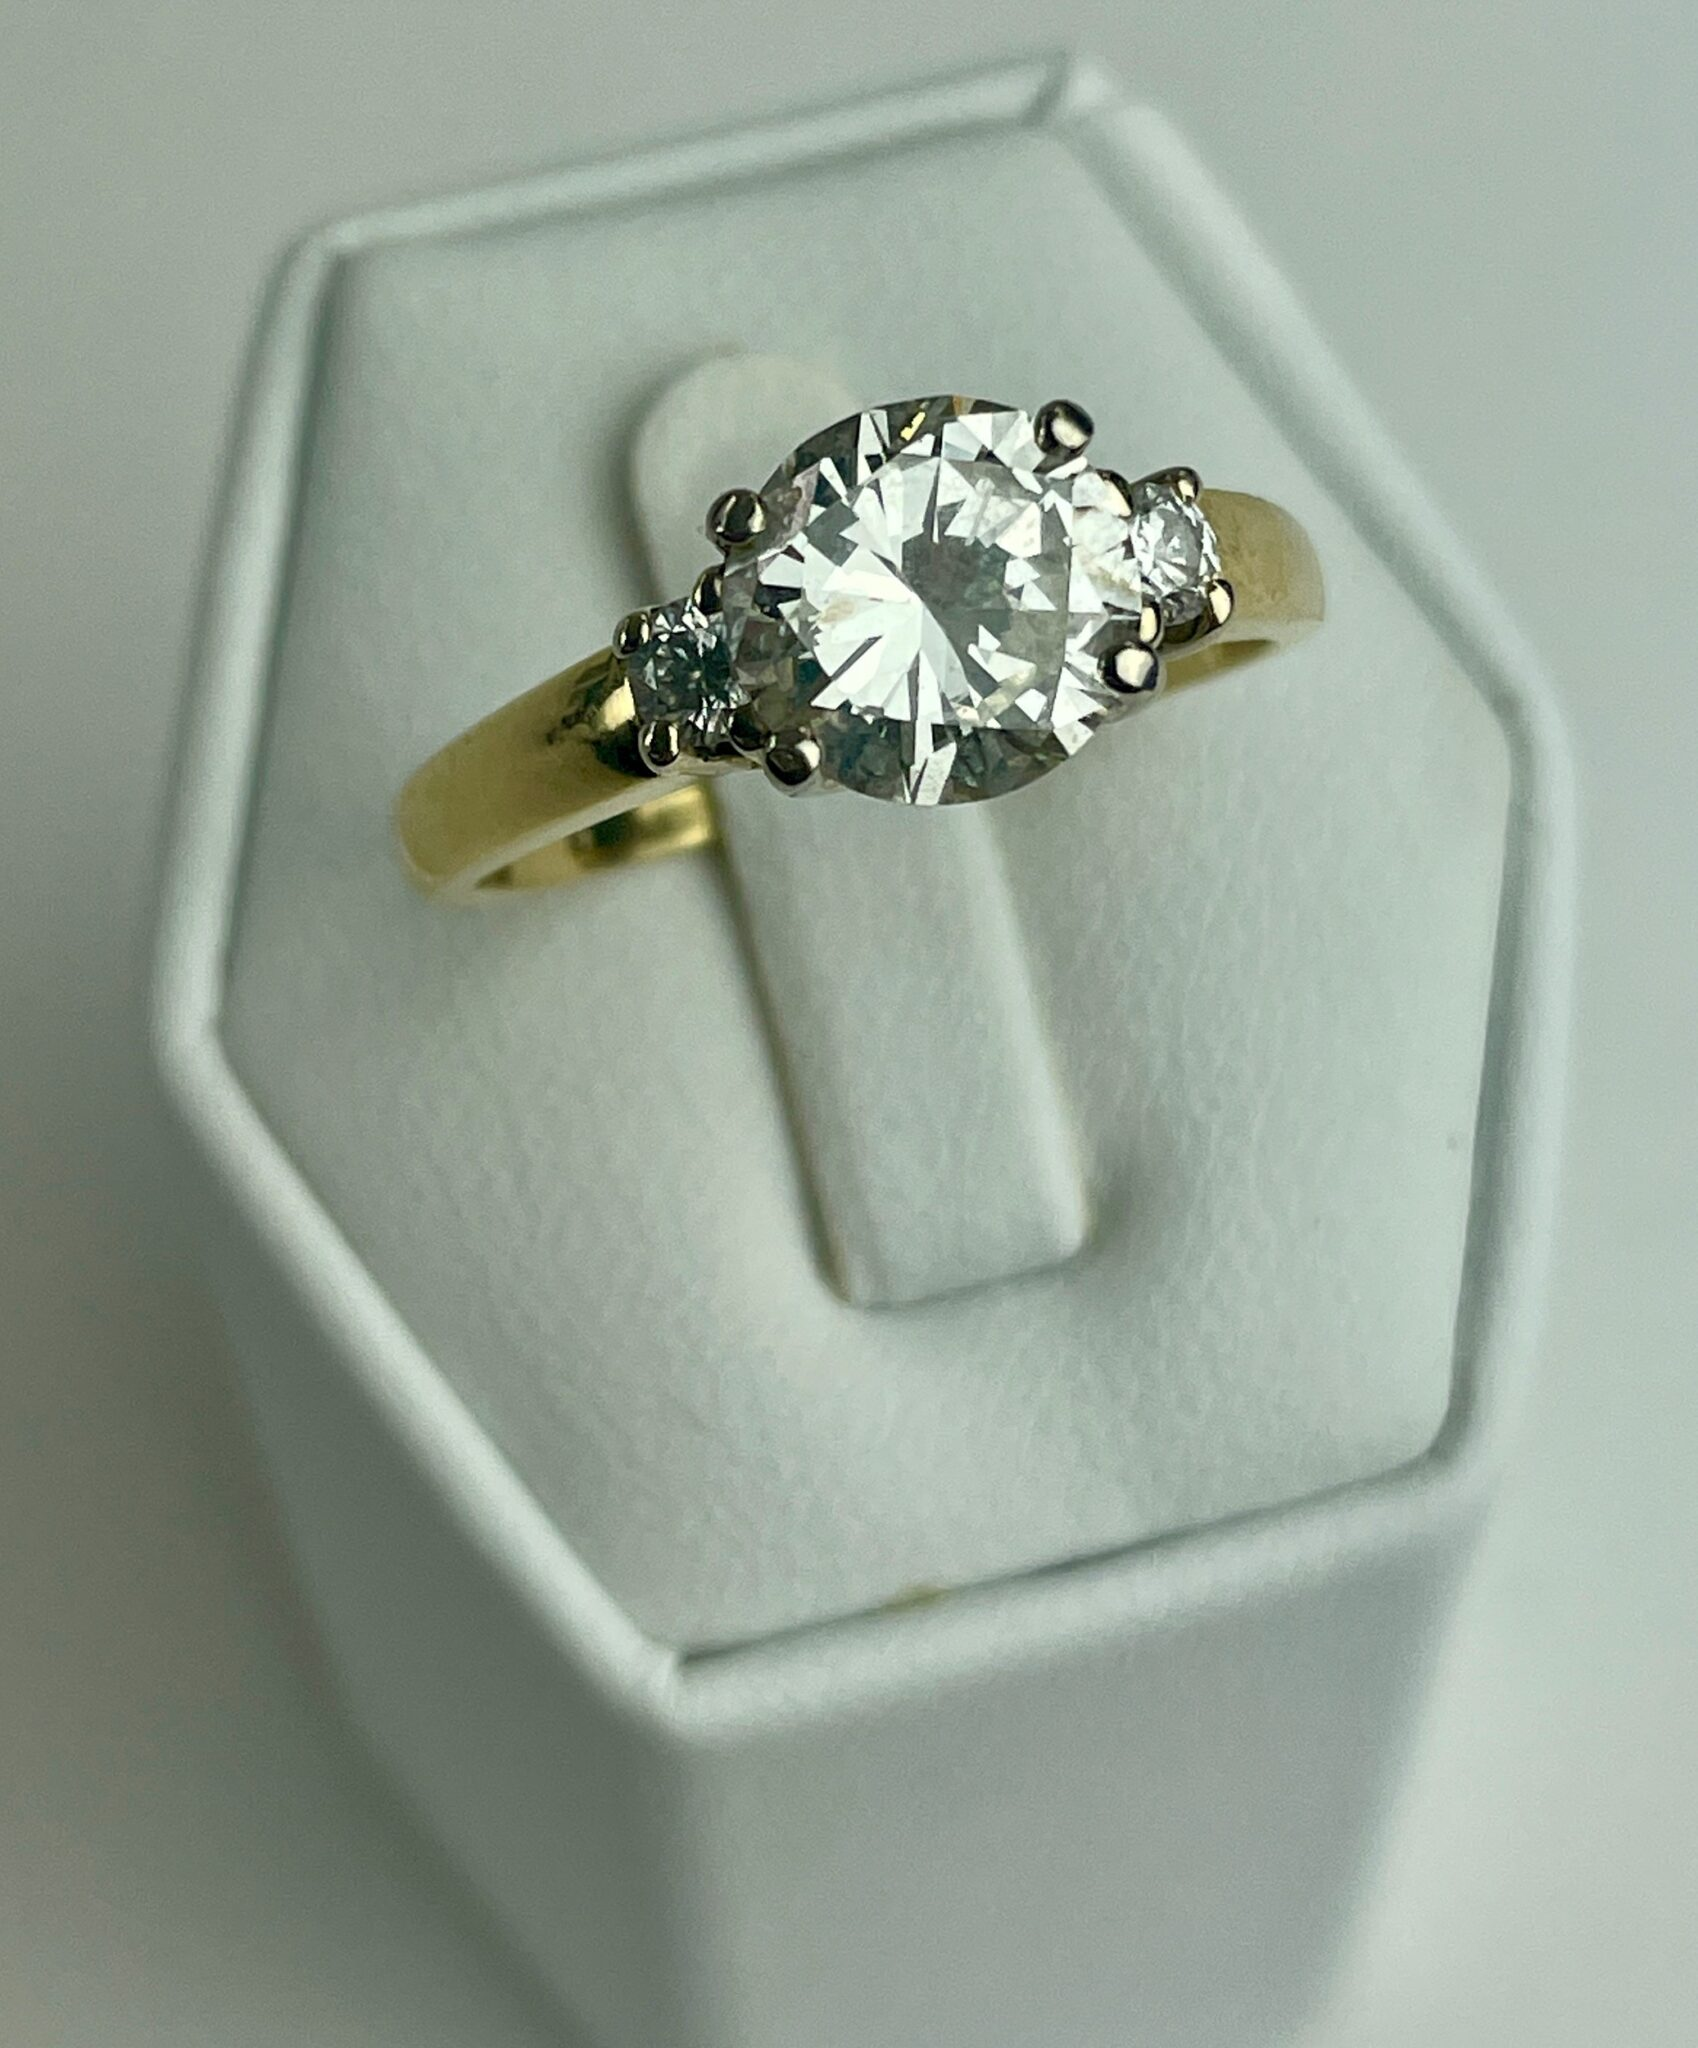 2.3 CT. 18K SOLITAIRE RING | Sold for $5,900